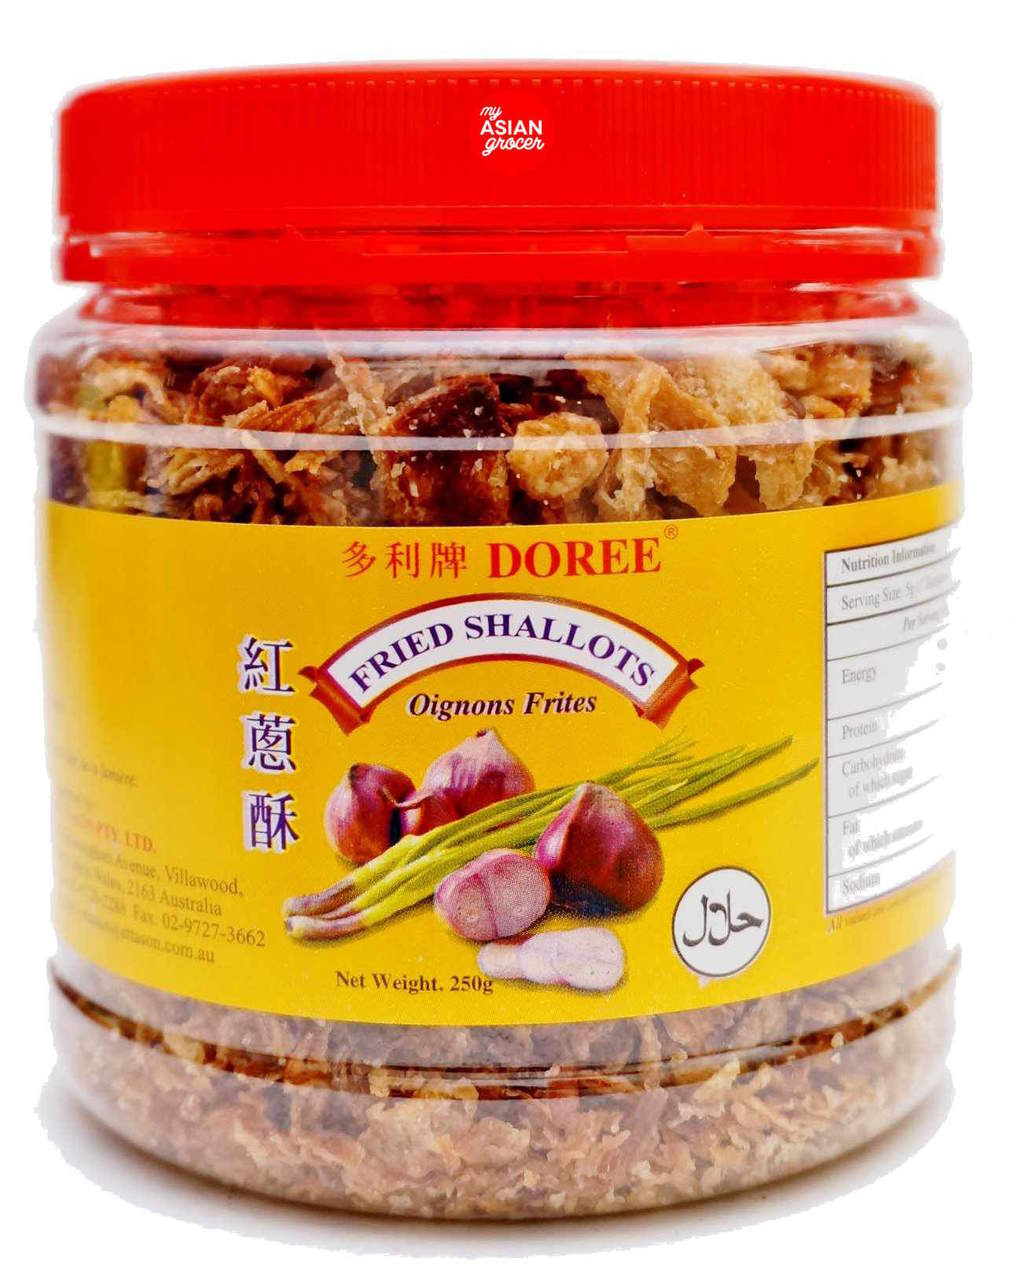 Doree Fried Shallots (Red Onions) 250g